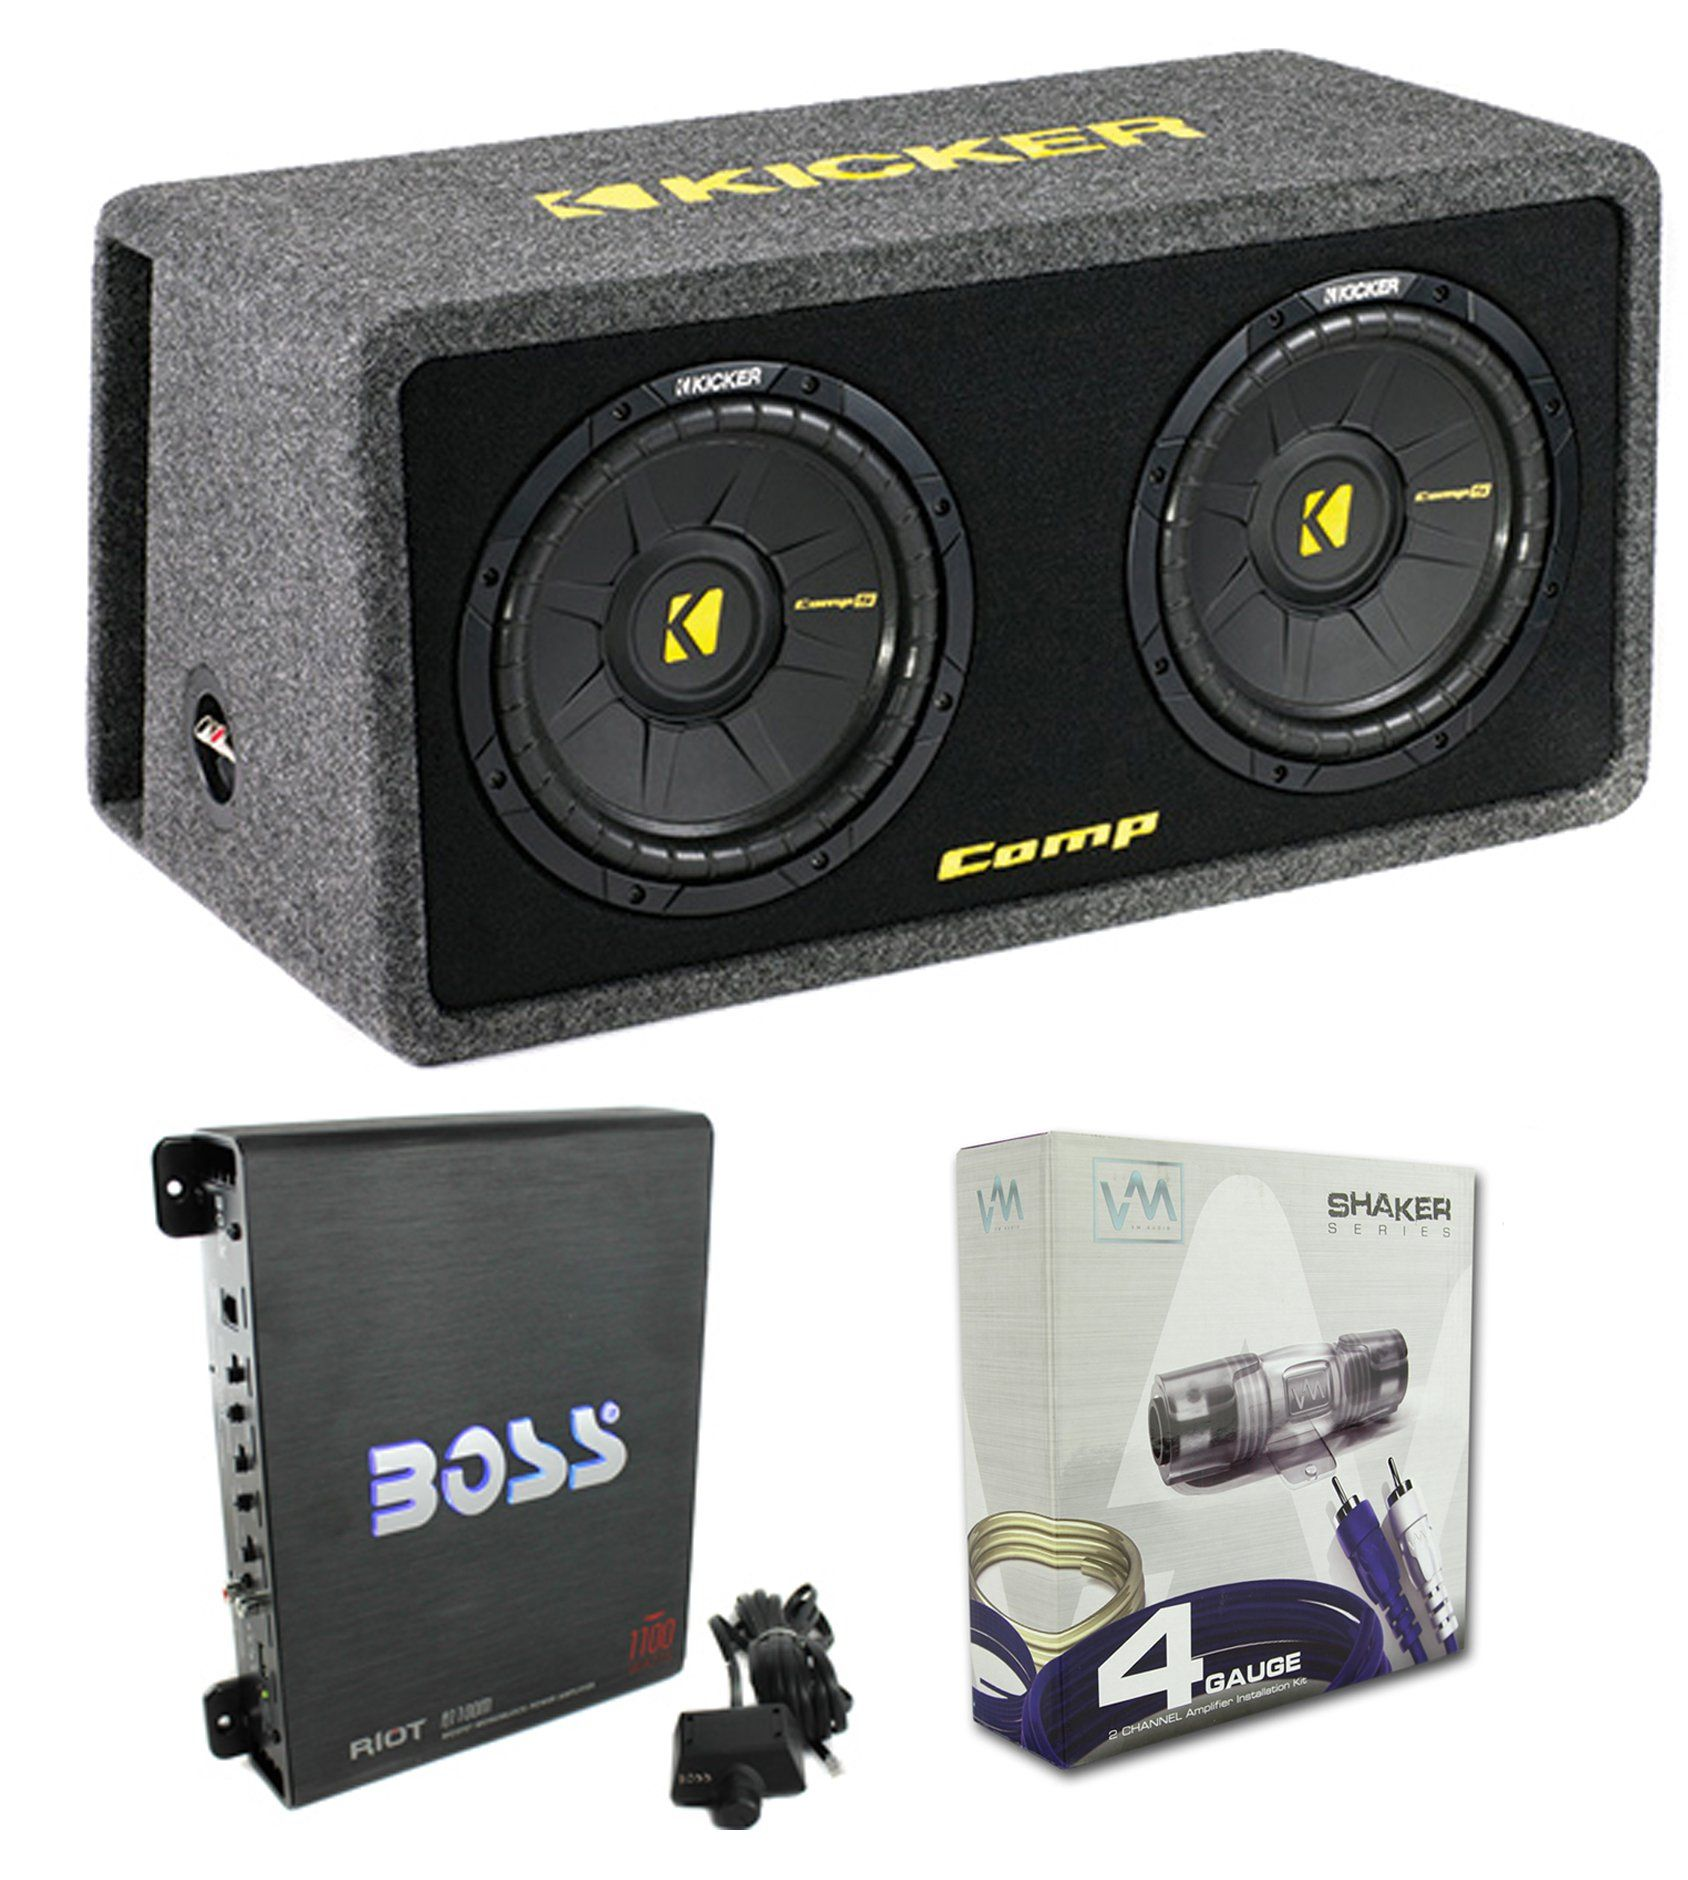 Kicker 40dcws122 12 inch 1200w subwoofer enclosure with mono kicker 40dcws122 12 inch 1200w subwoofer enclosure with mono amplifier sciox Image collections